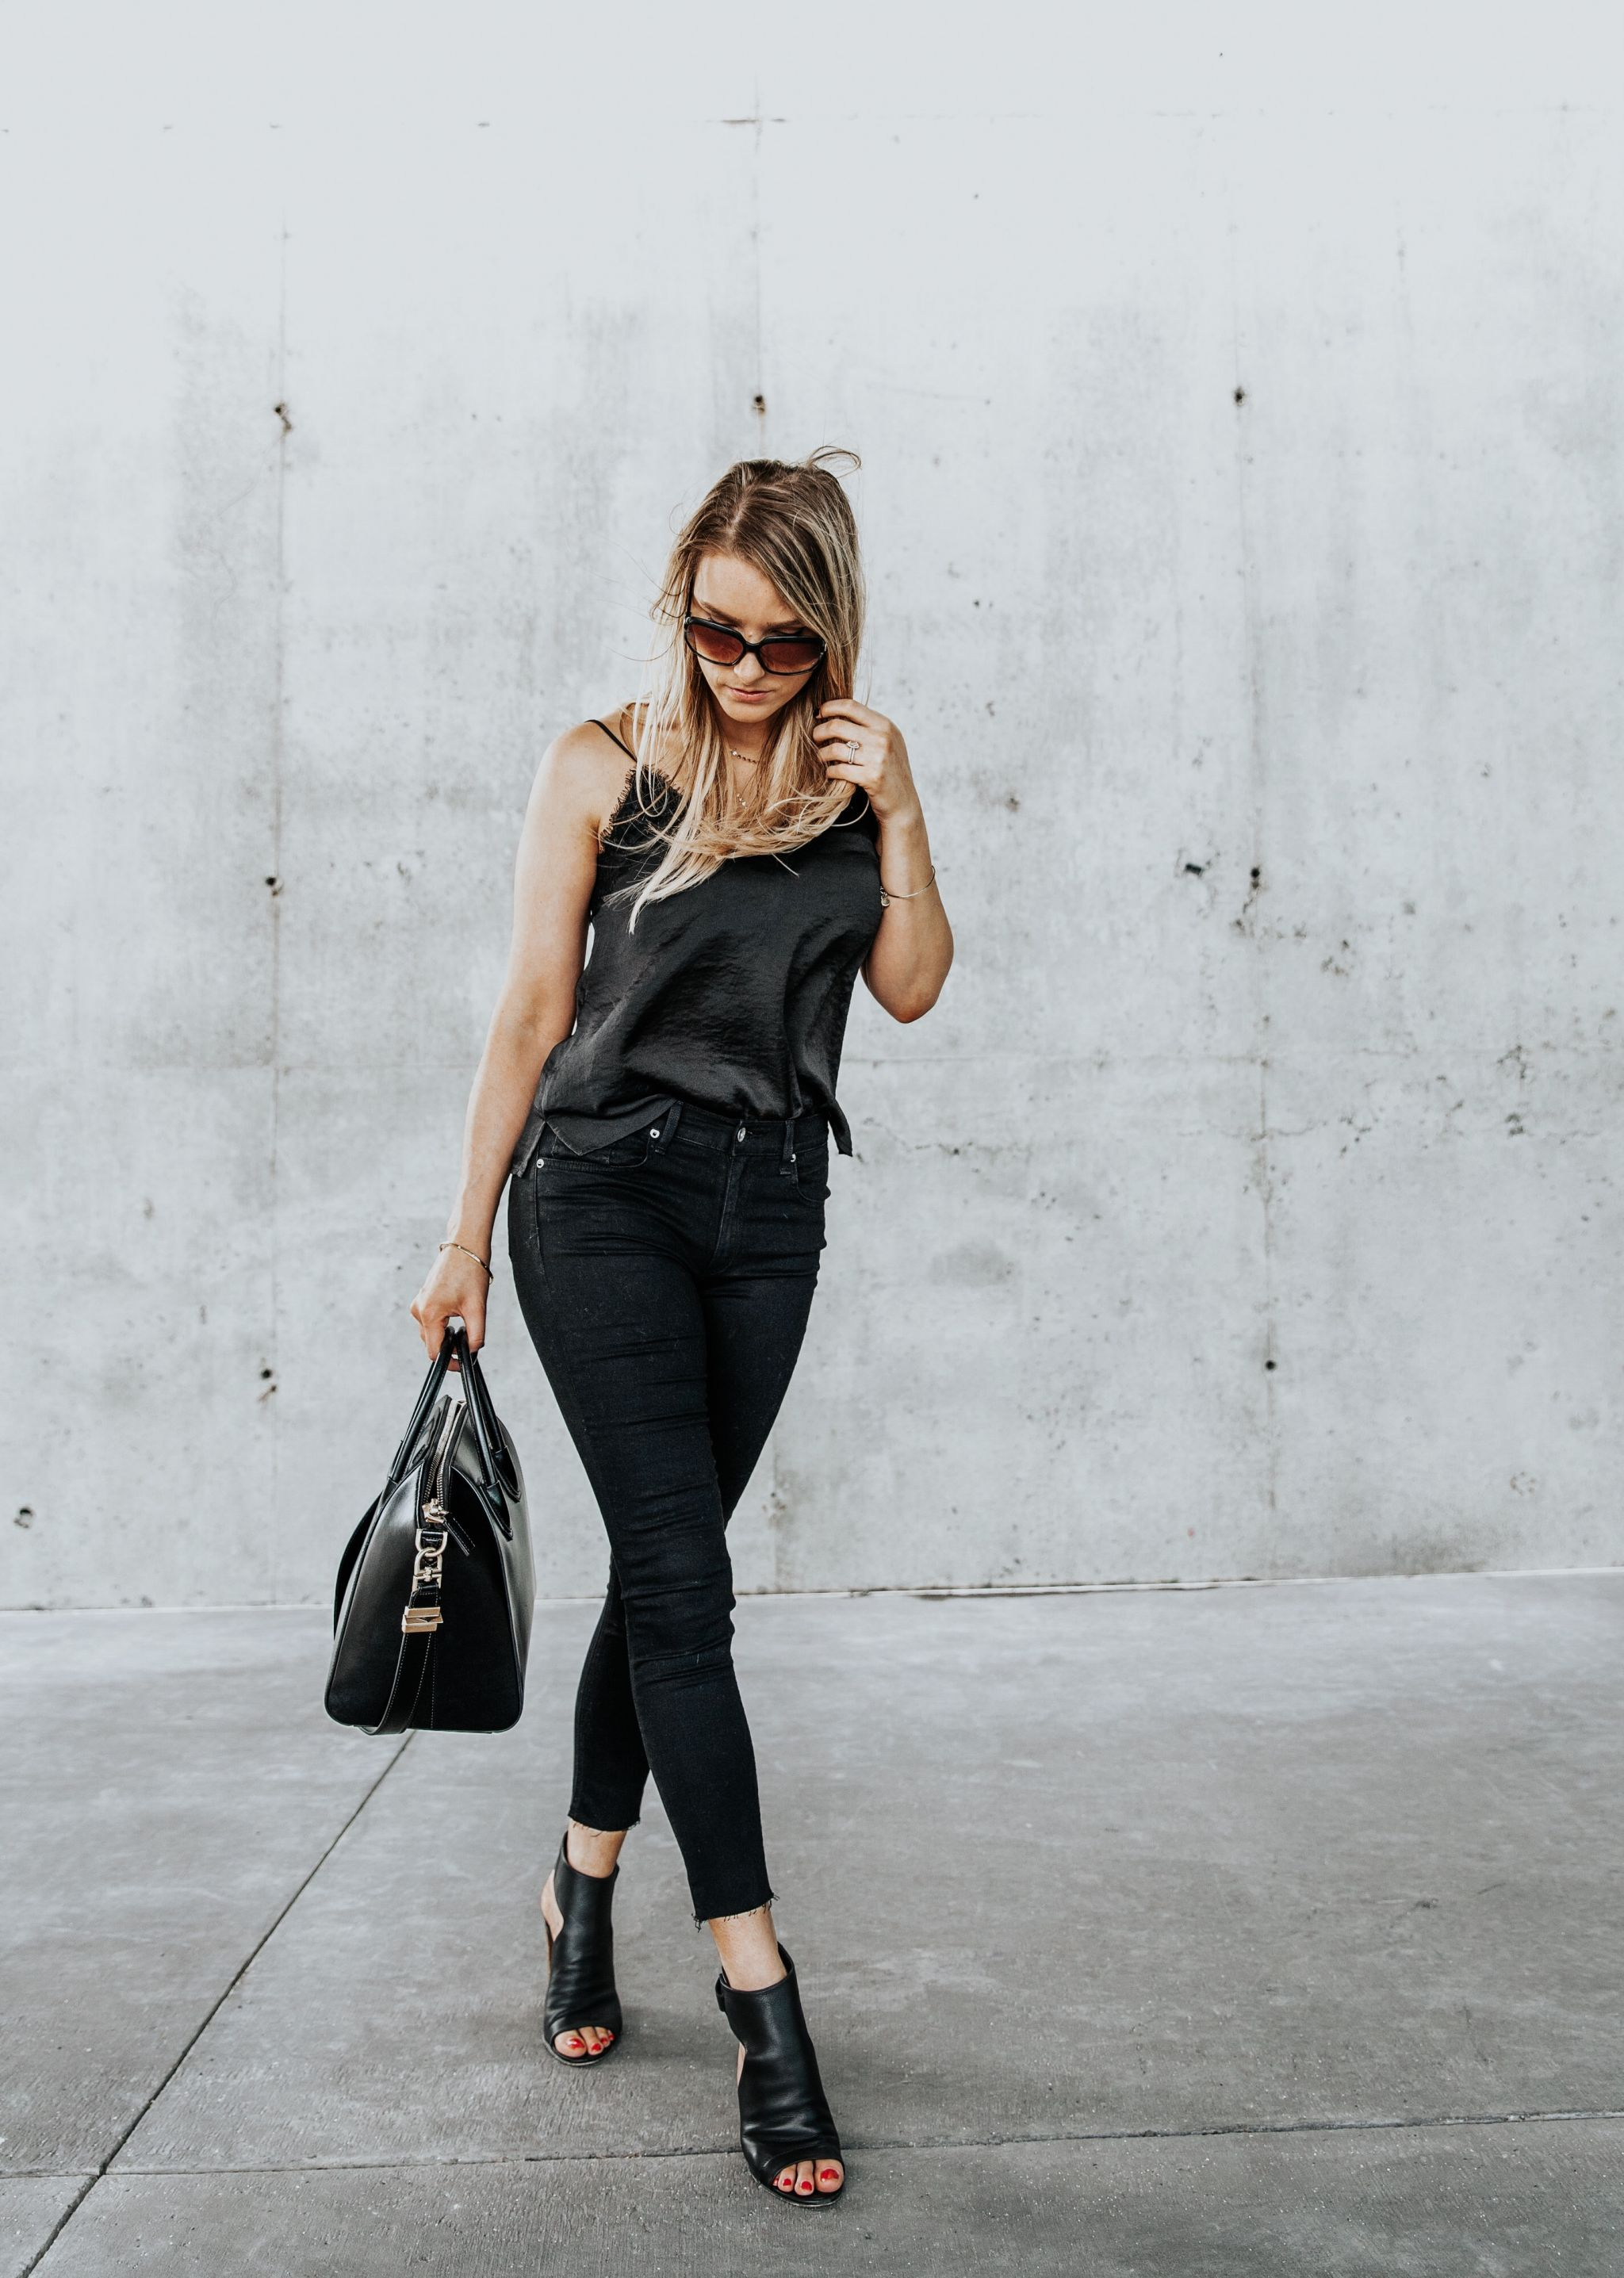 1 person, all black outfit fashion blogger